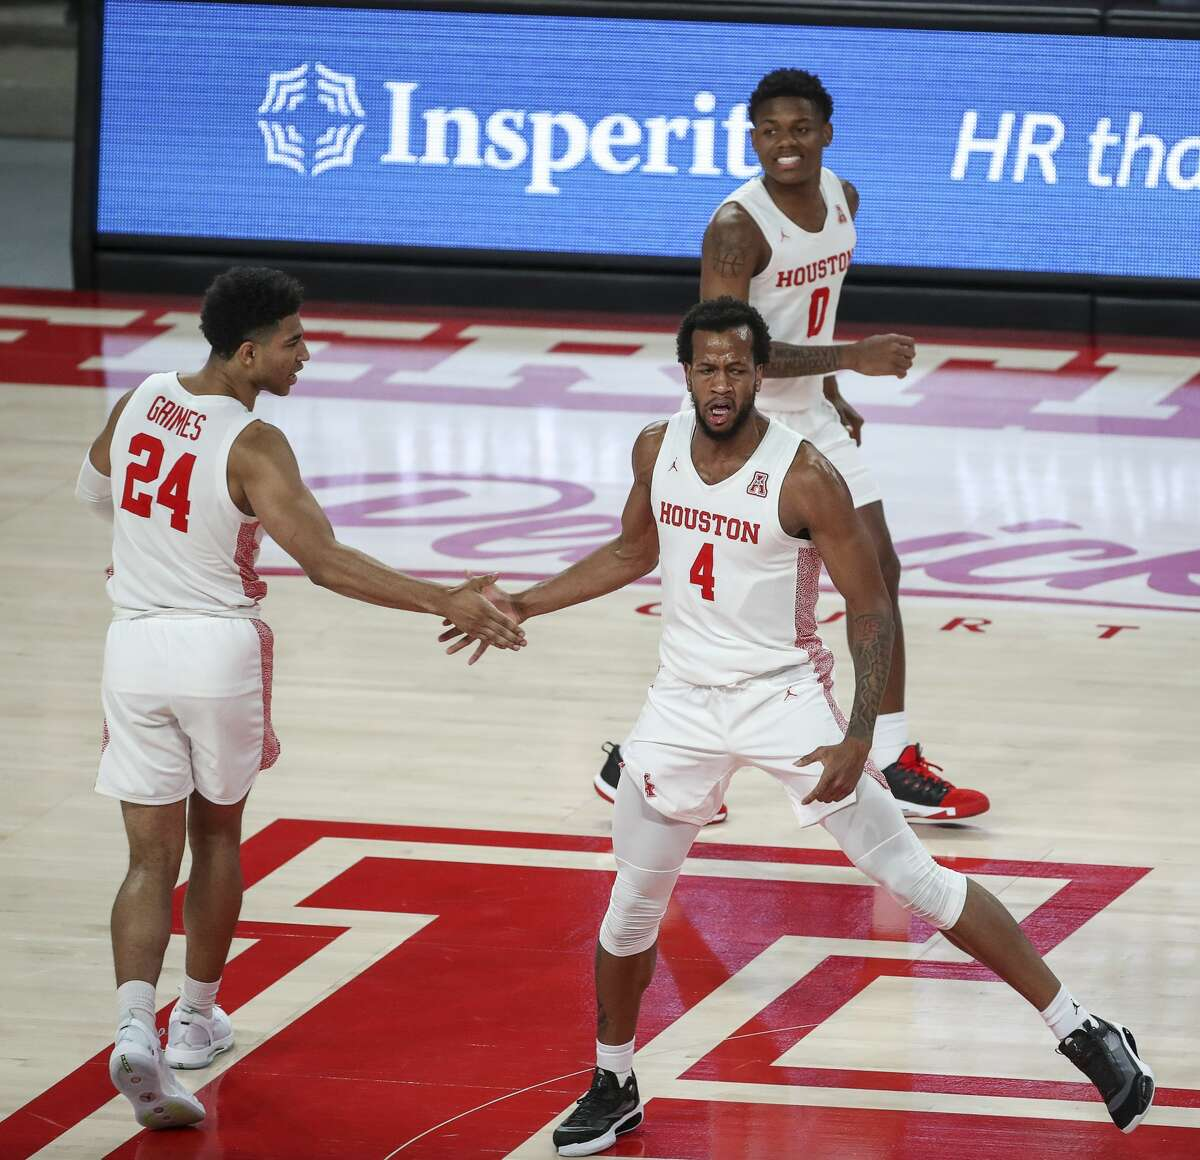 Houston Cougars forward Justin Gorham (4) celebrates with guard Quentin Grimes (24) as guard Marcus Sasser (0) smiles during the first half of an NCAA basketball game Friday, Nov. 27, 2020, at the Fertitta Center in Houston.